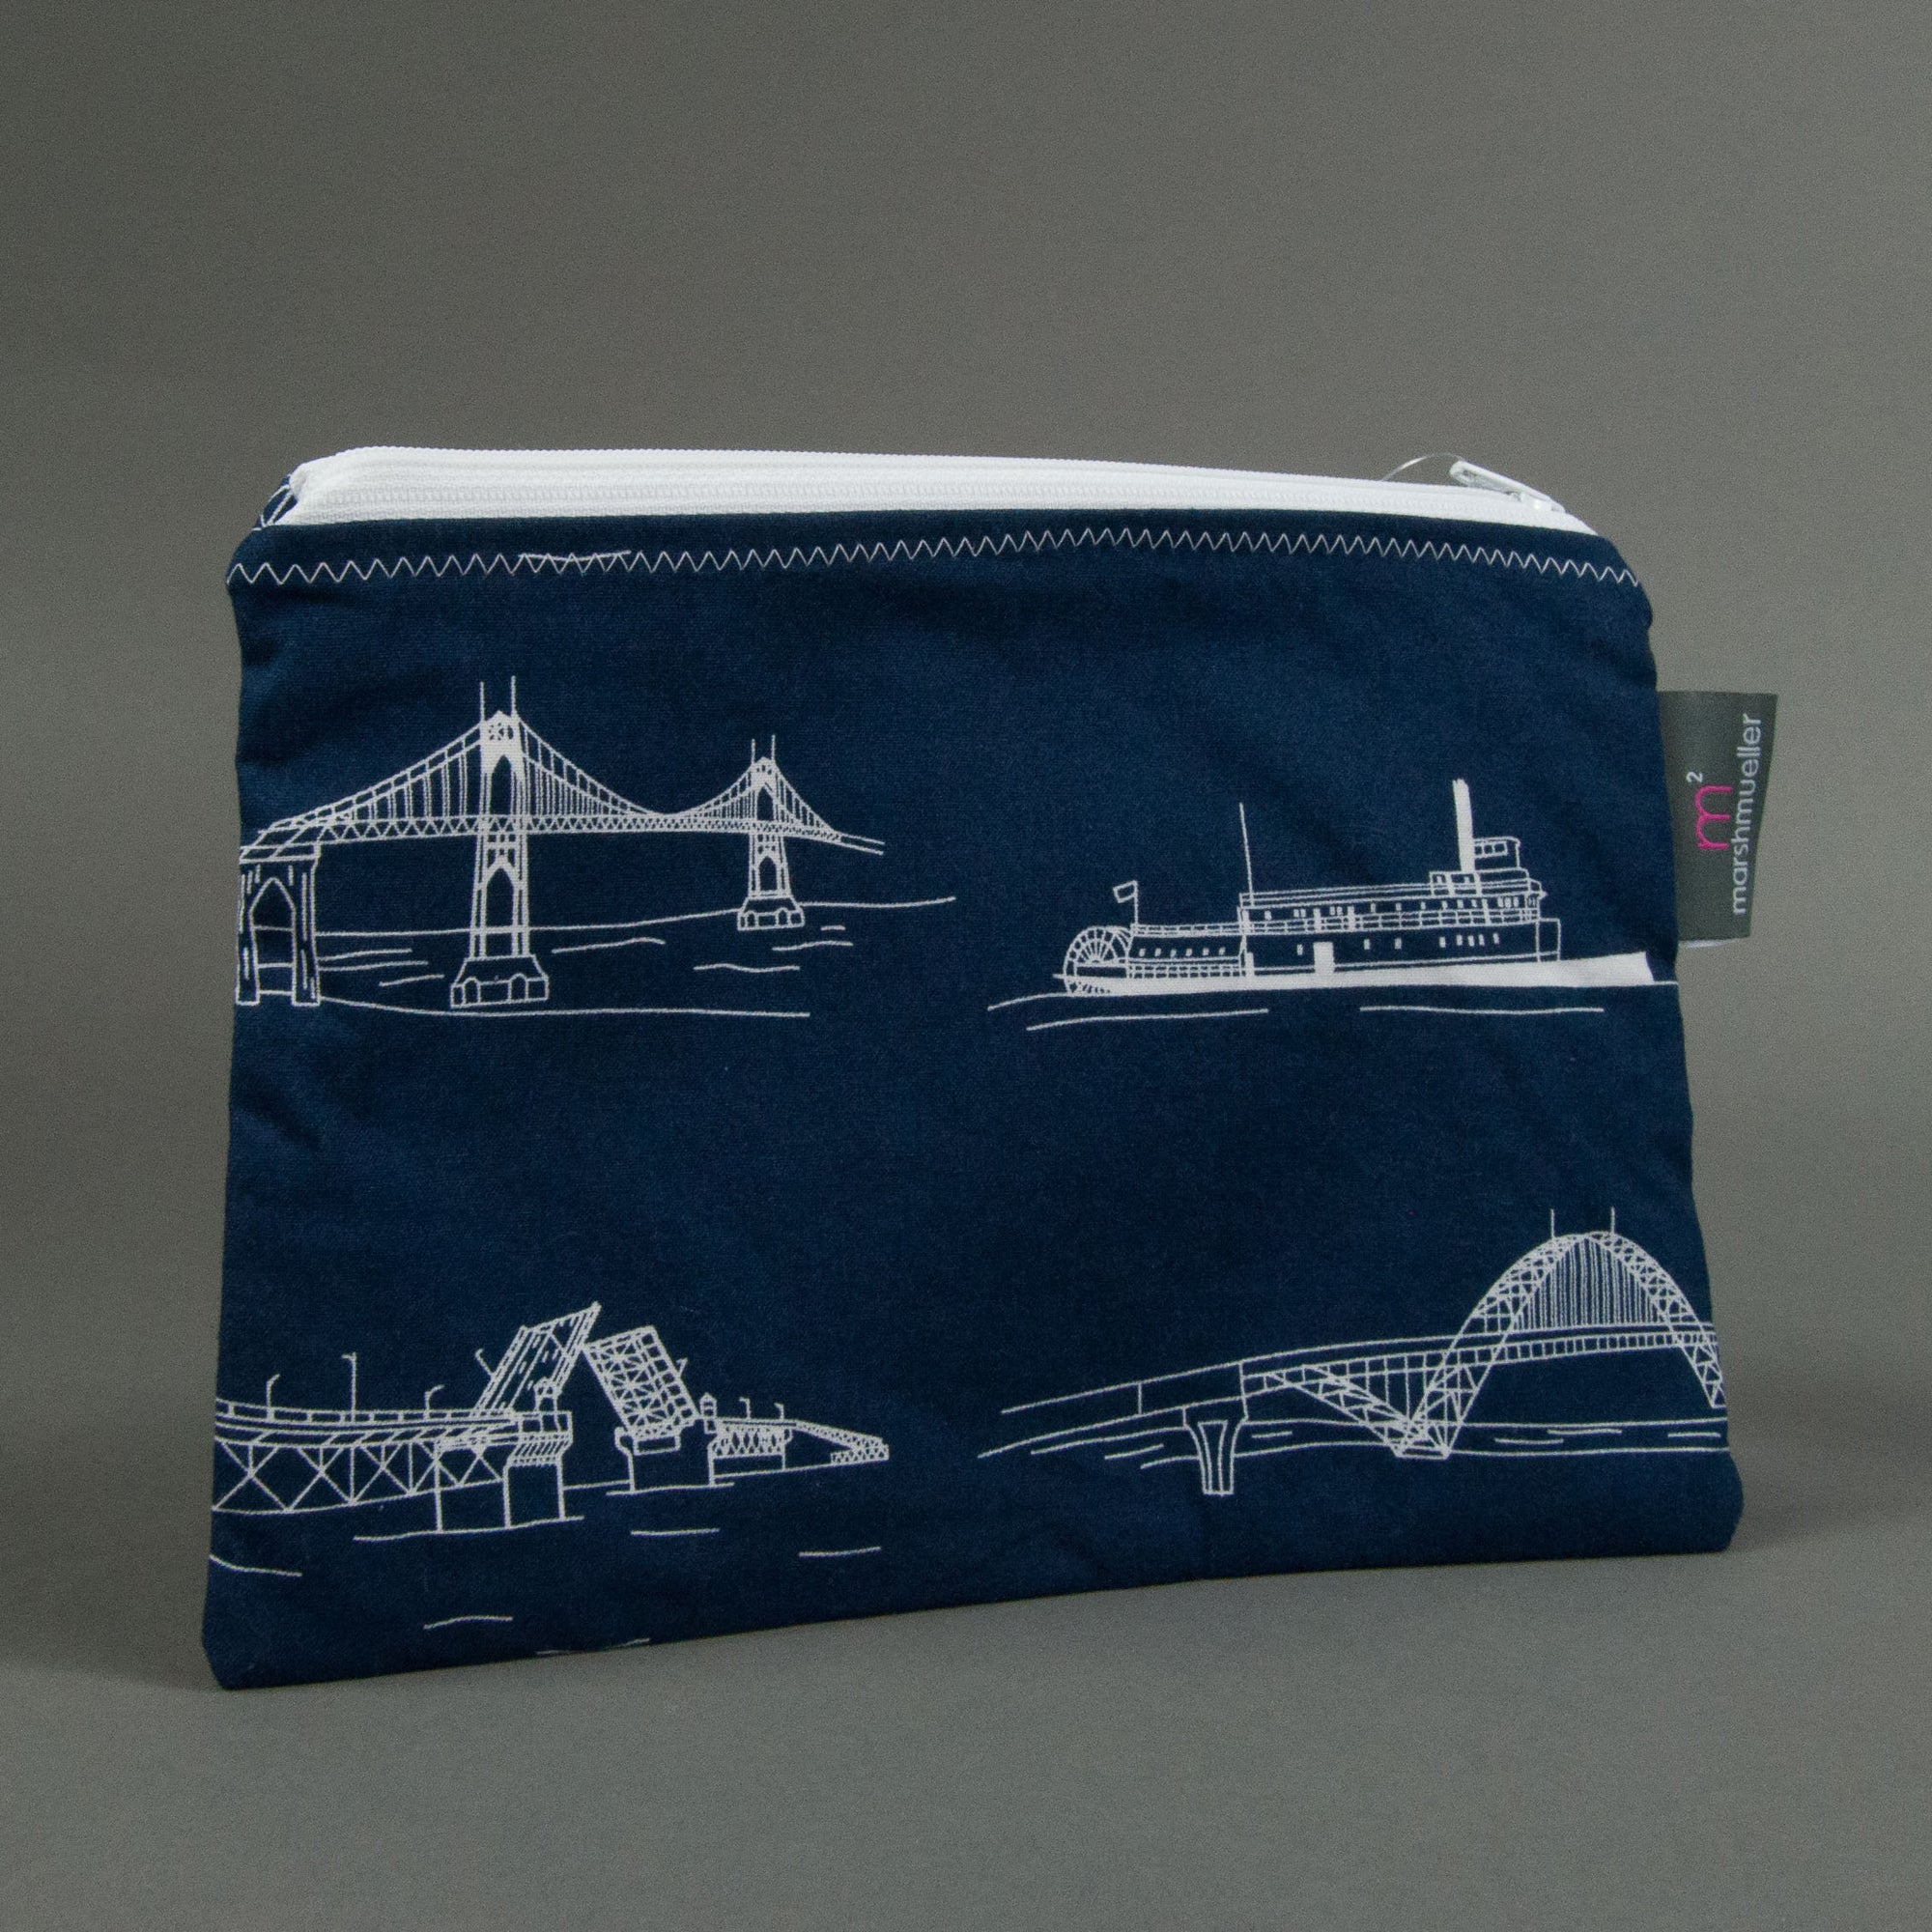 Navy Bridgetown Zippy Bag, Zippy Bag, - MarshMueller